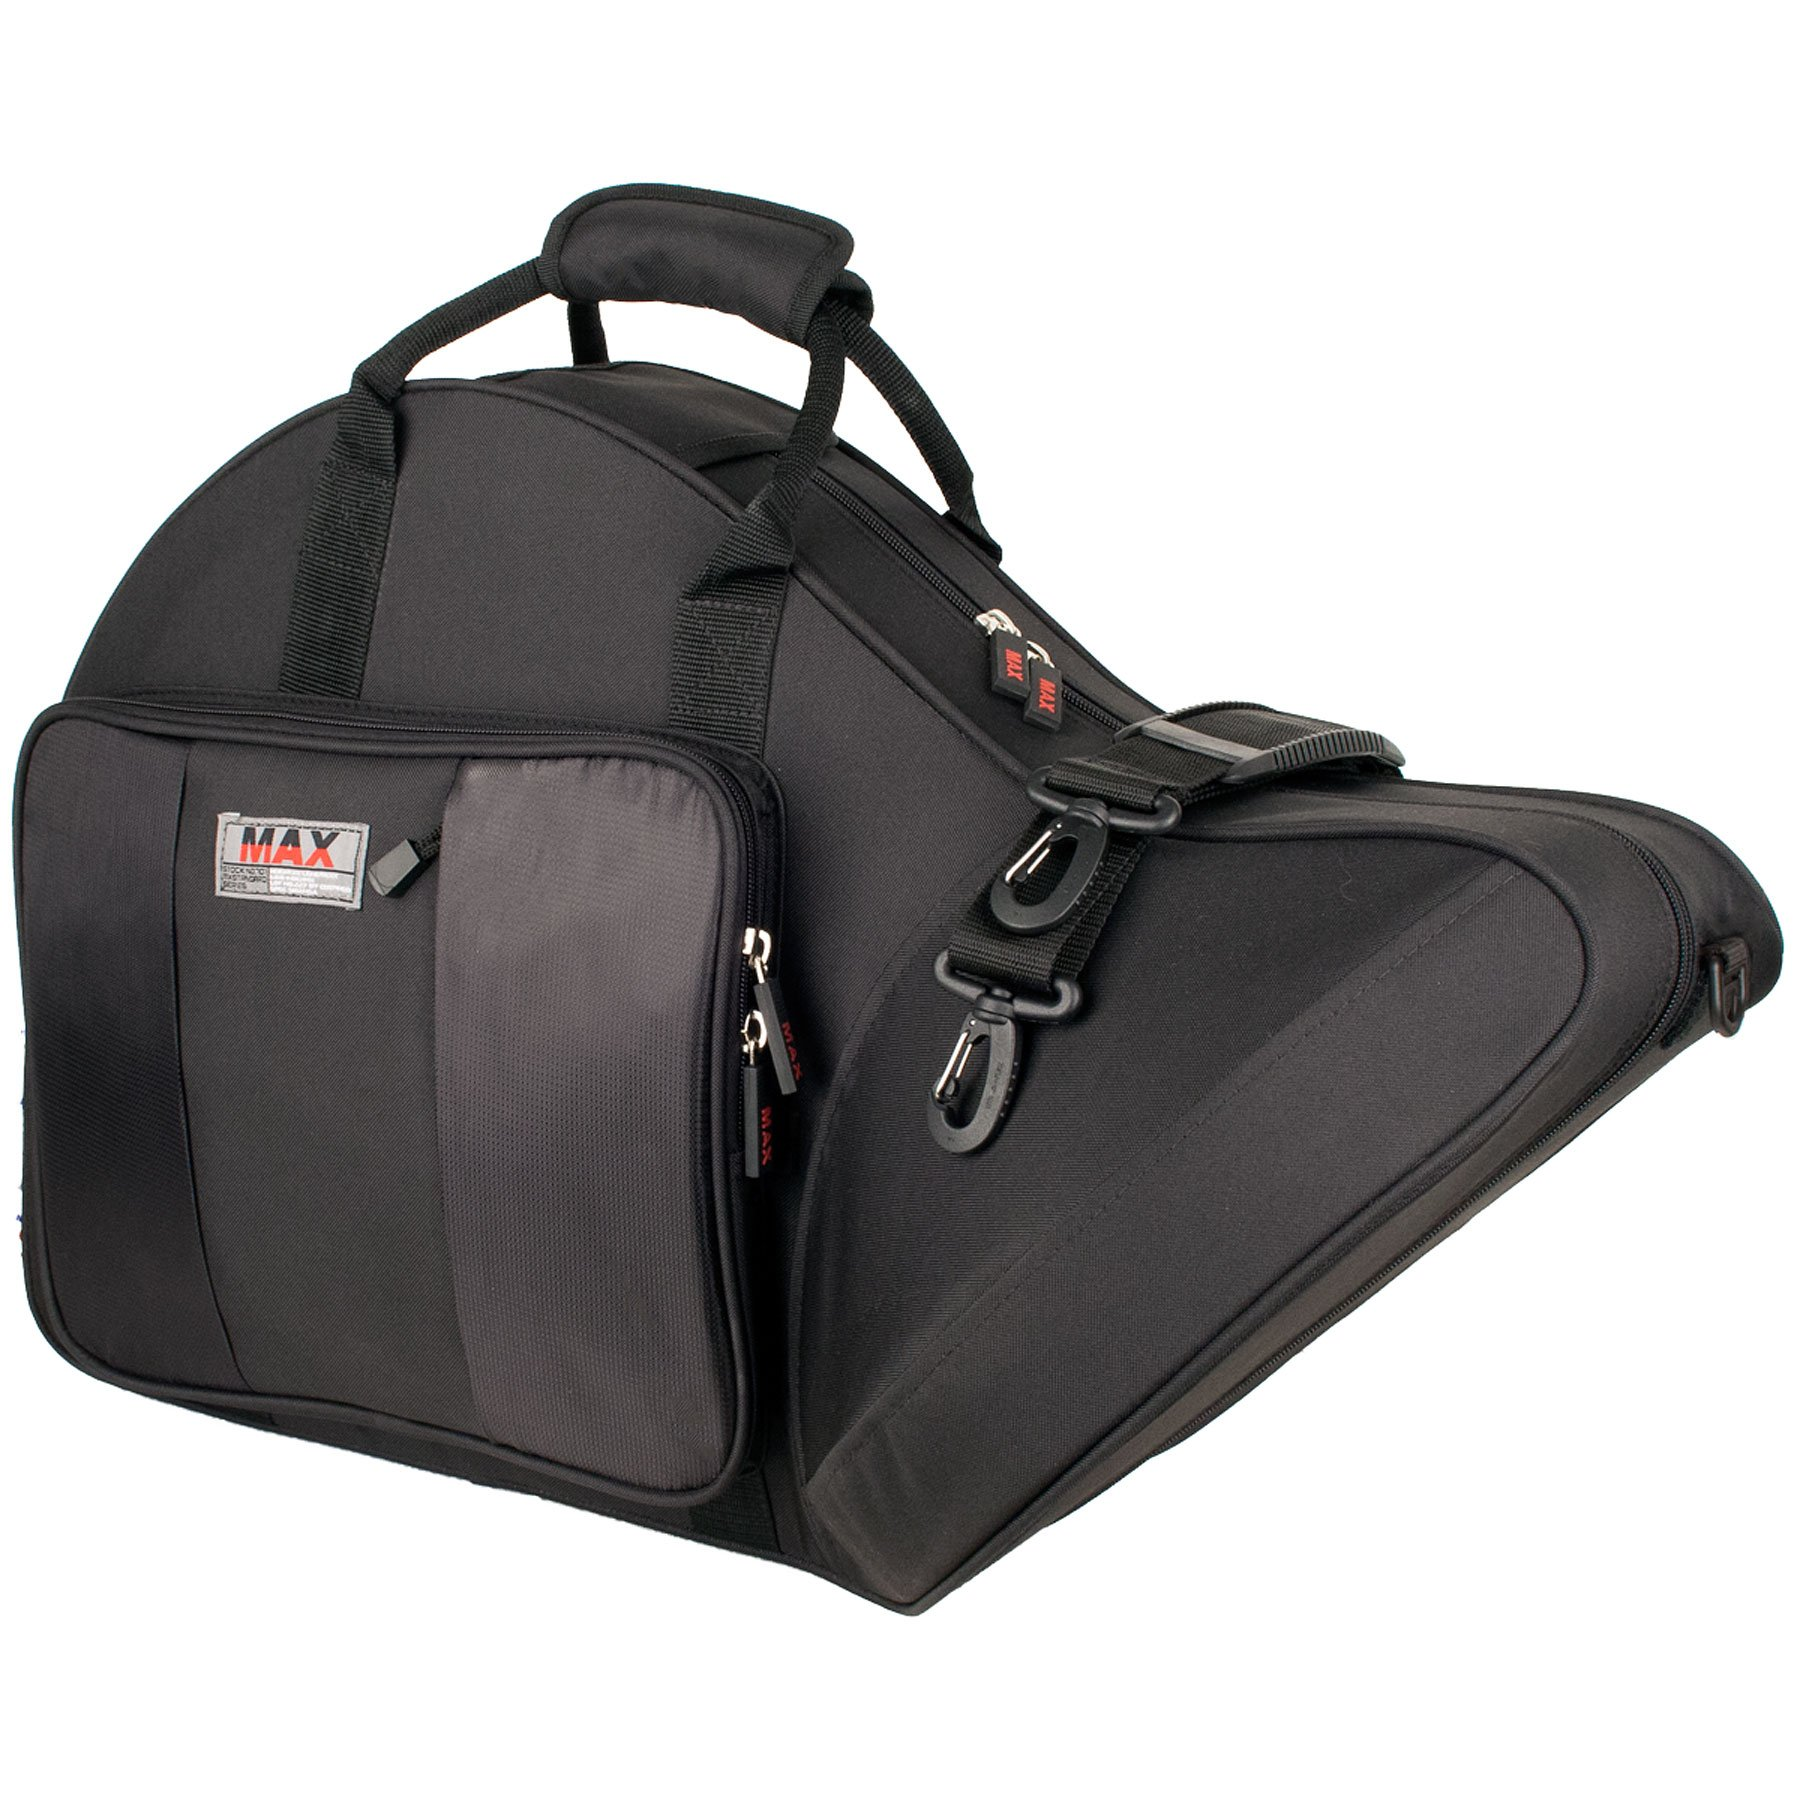 Protec MAX MX316CT Contoured French Horn Case by ProTec